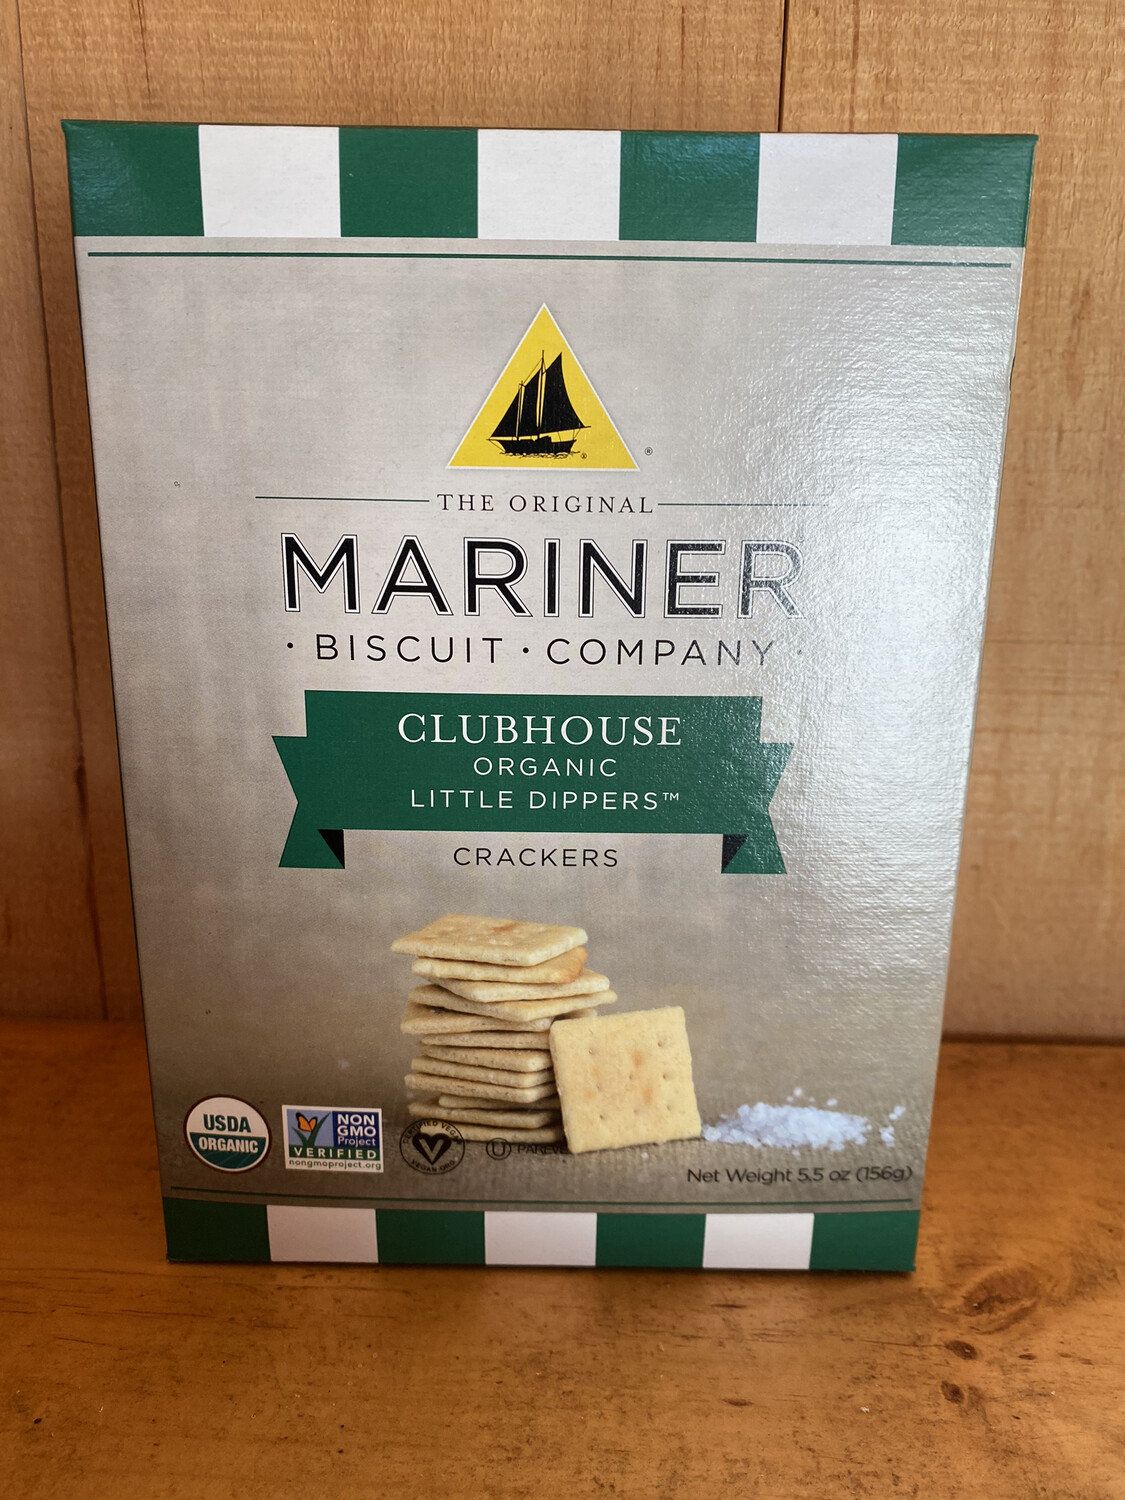 Clubhouse Organic Little Dipper Crackers | Mariner Biscuit Company | 5.5oz